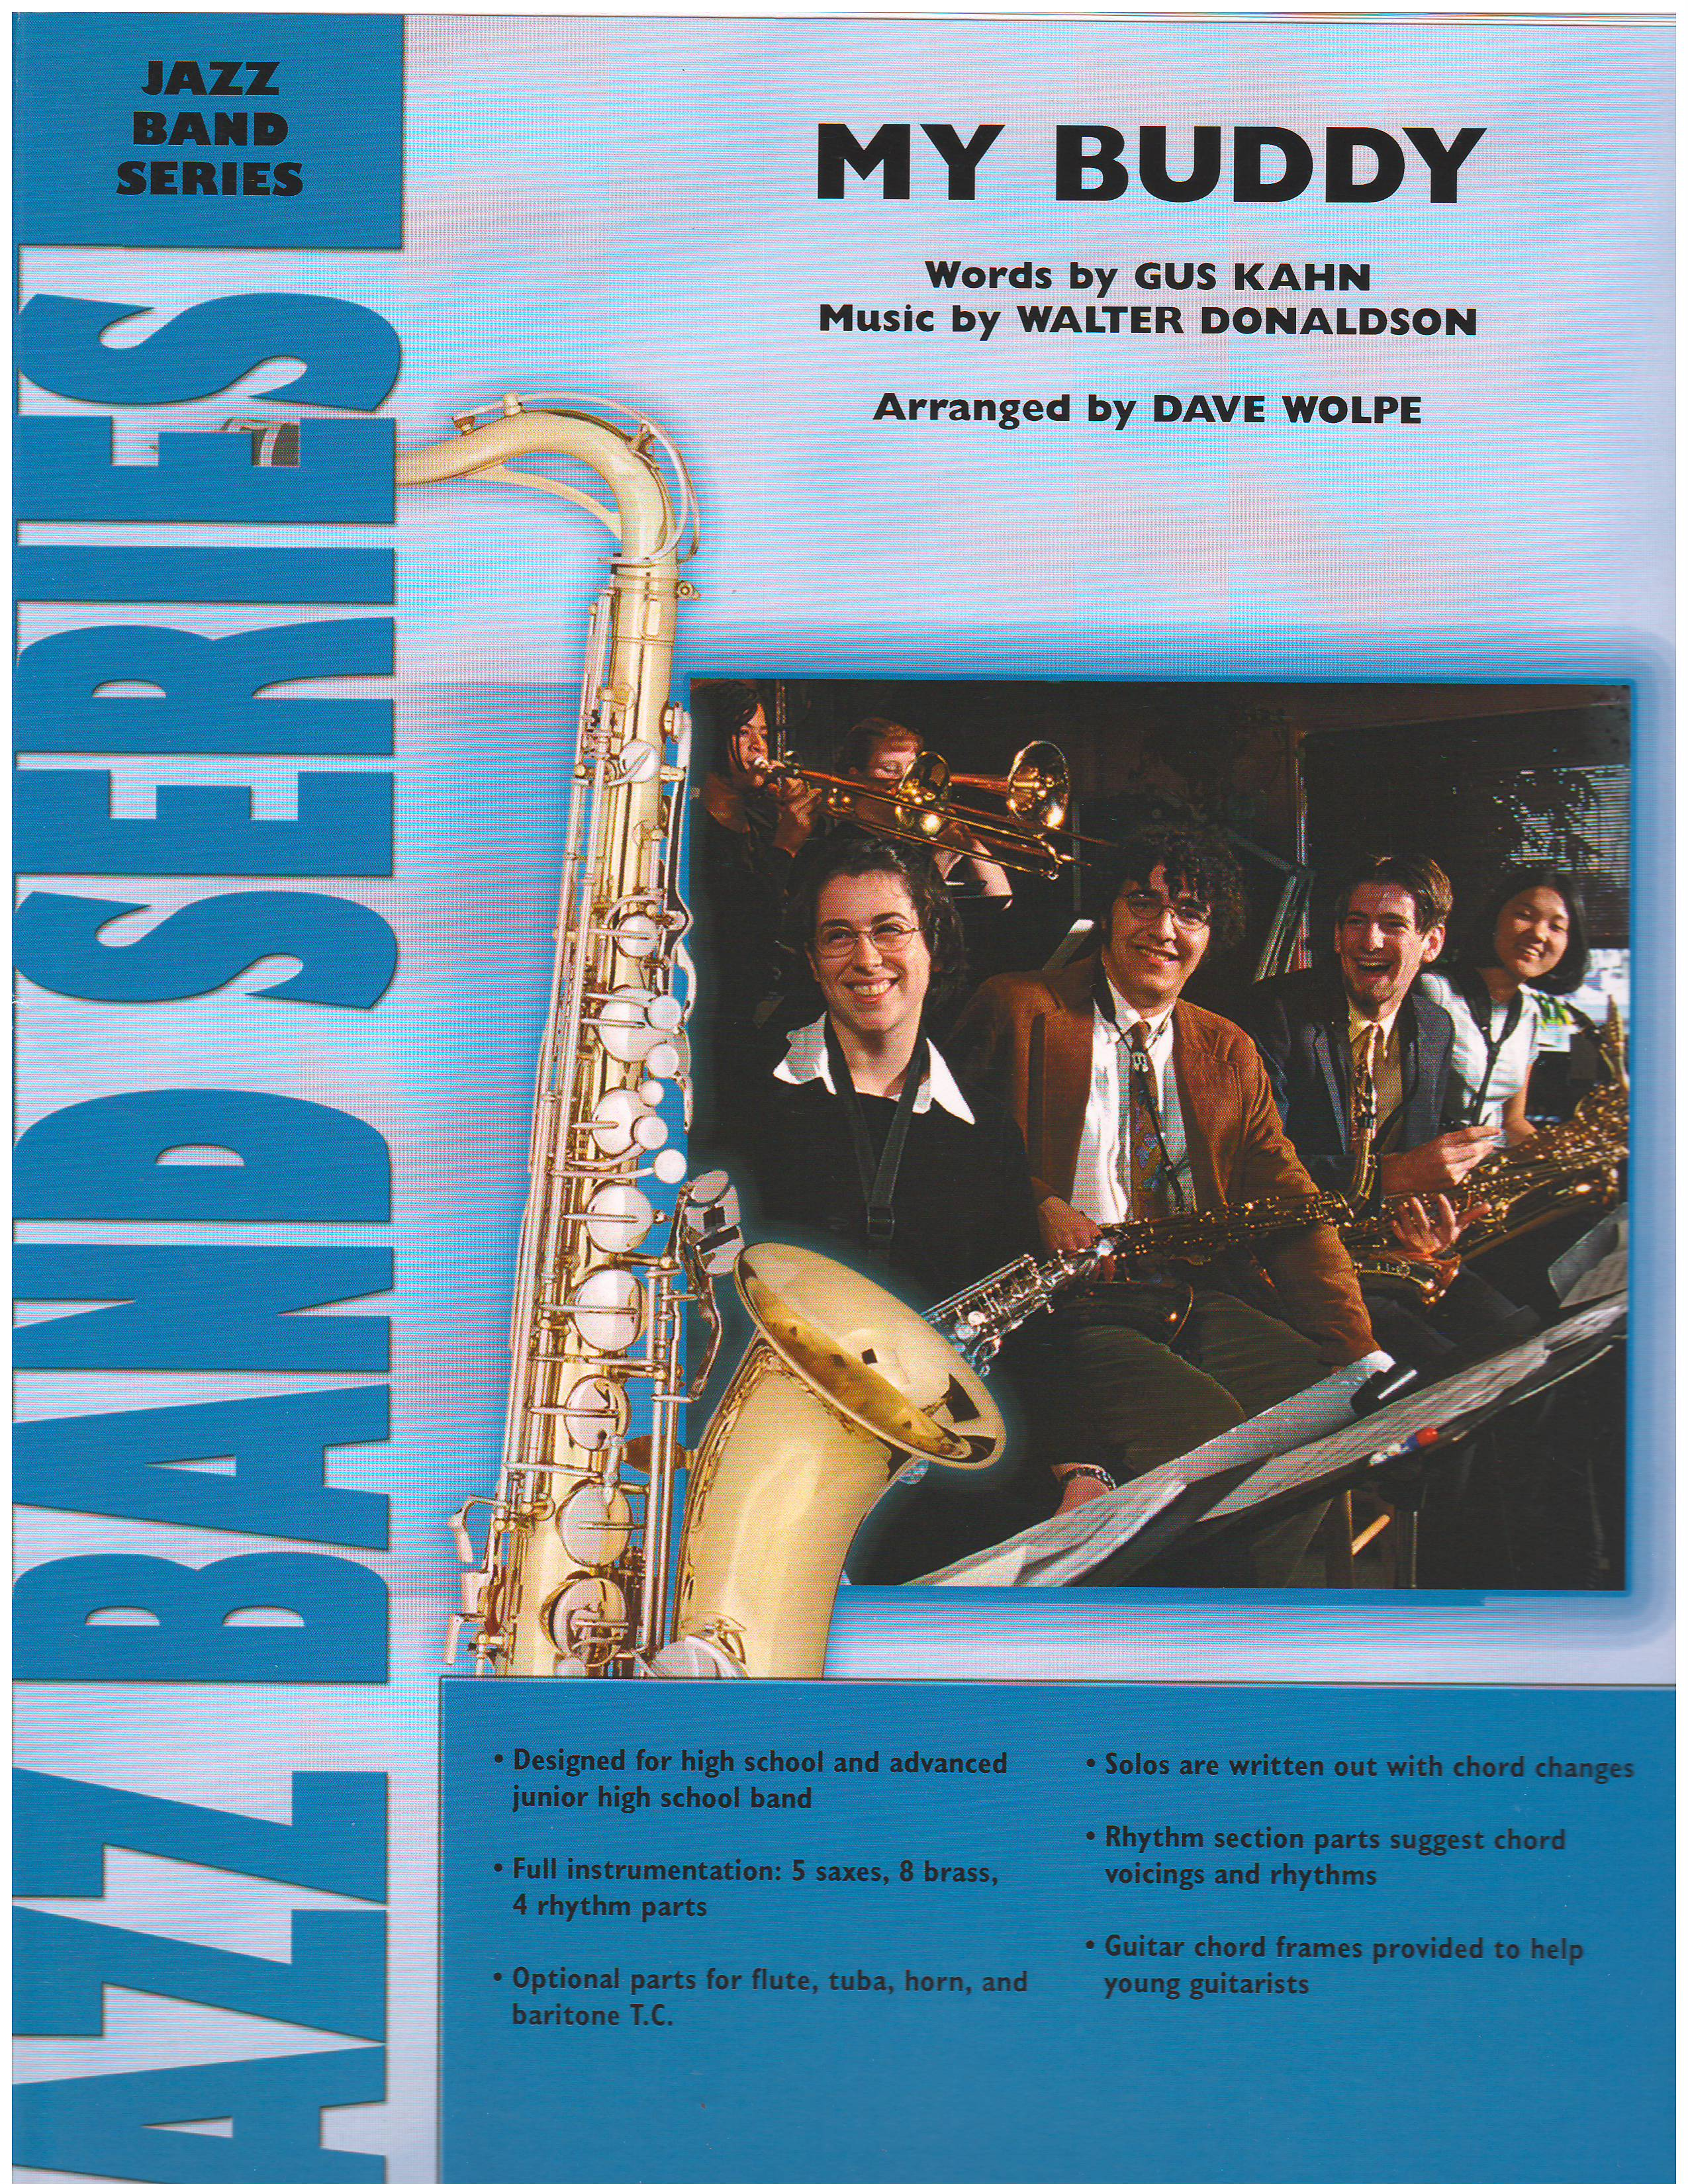 My buddy jazz classics jazz ensemble big band marina music be the first to review my buddy cancel reply hexwebz Image collections